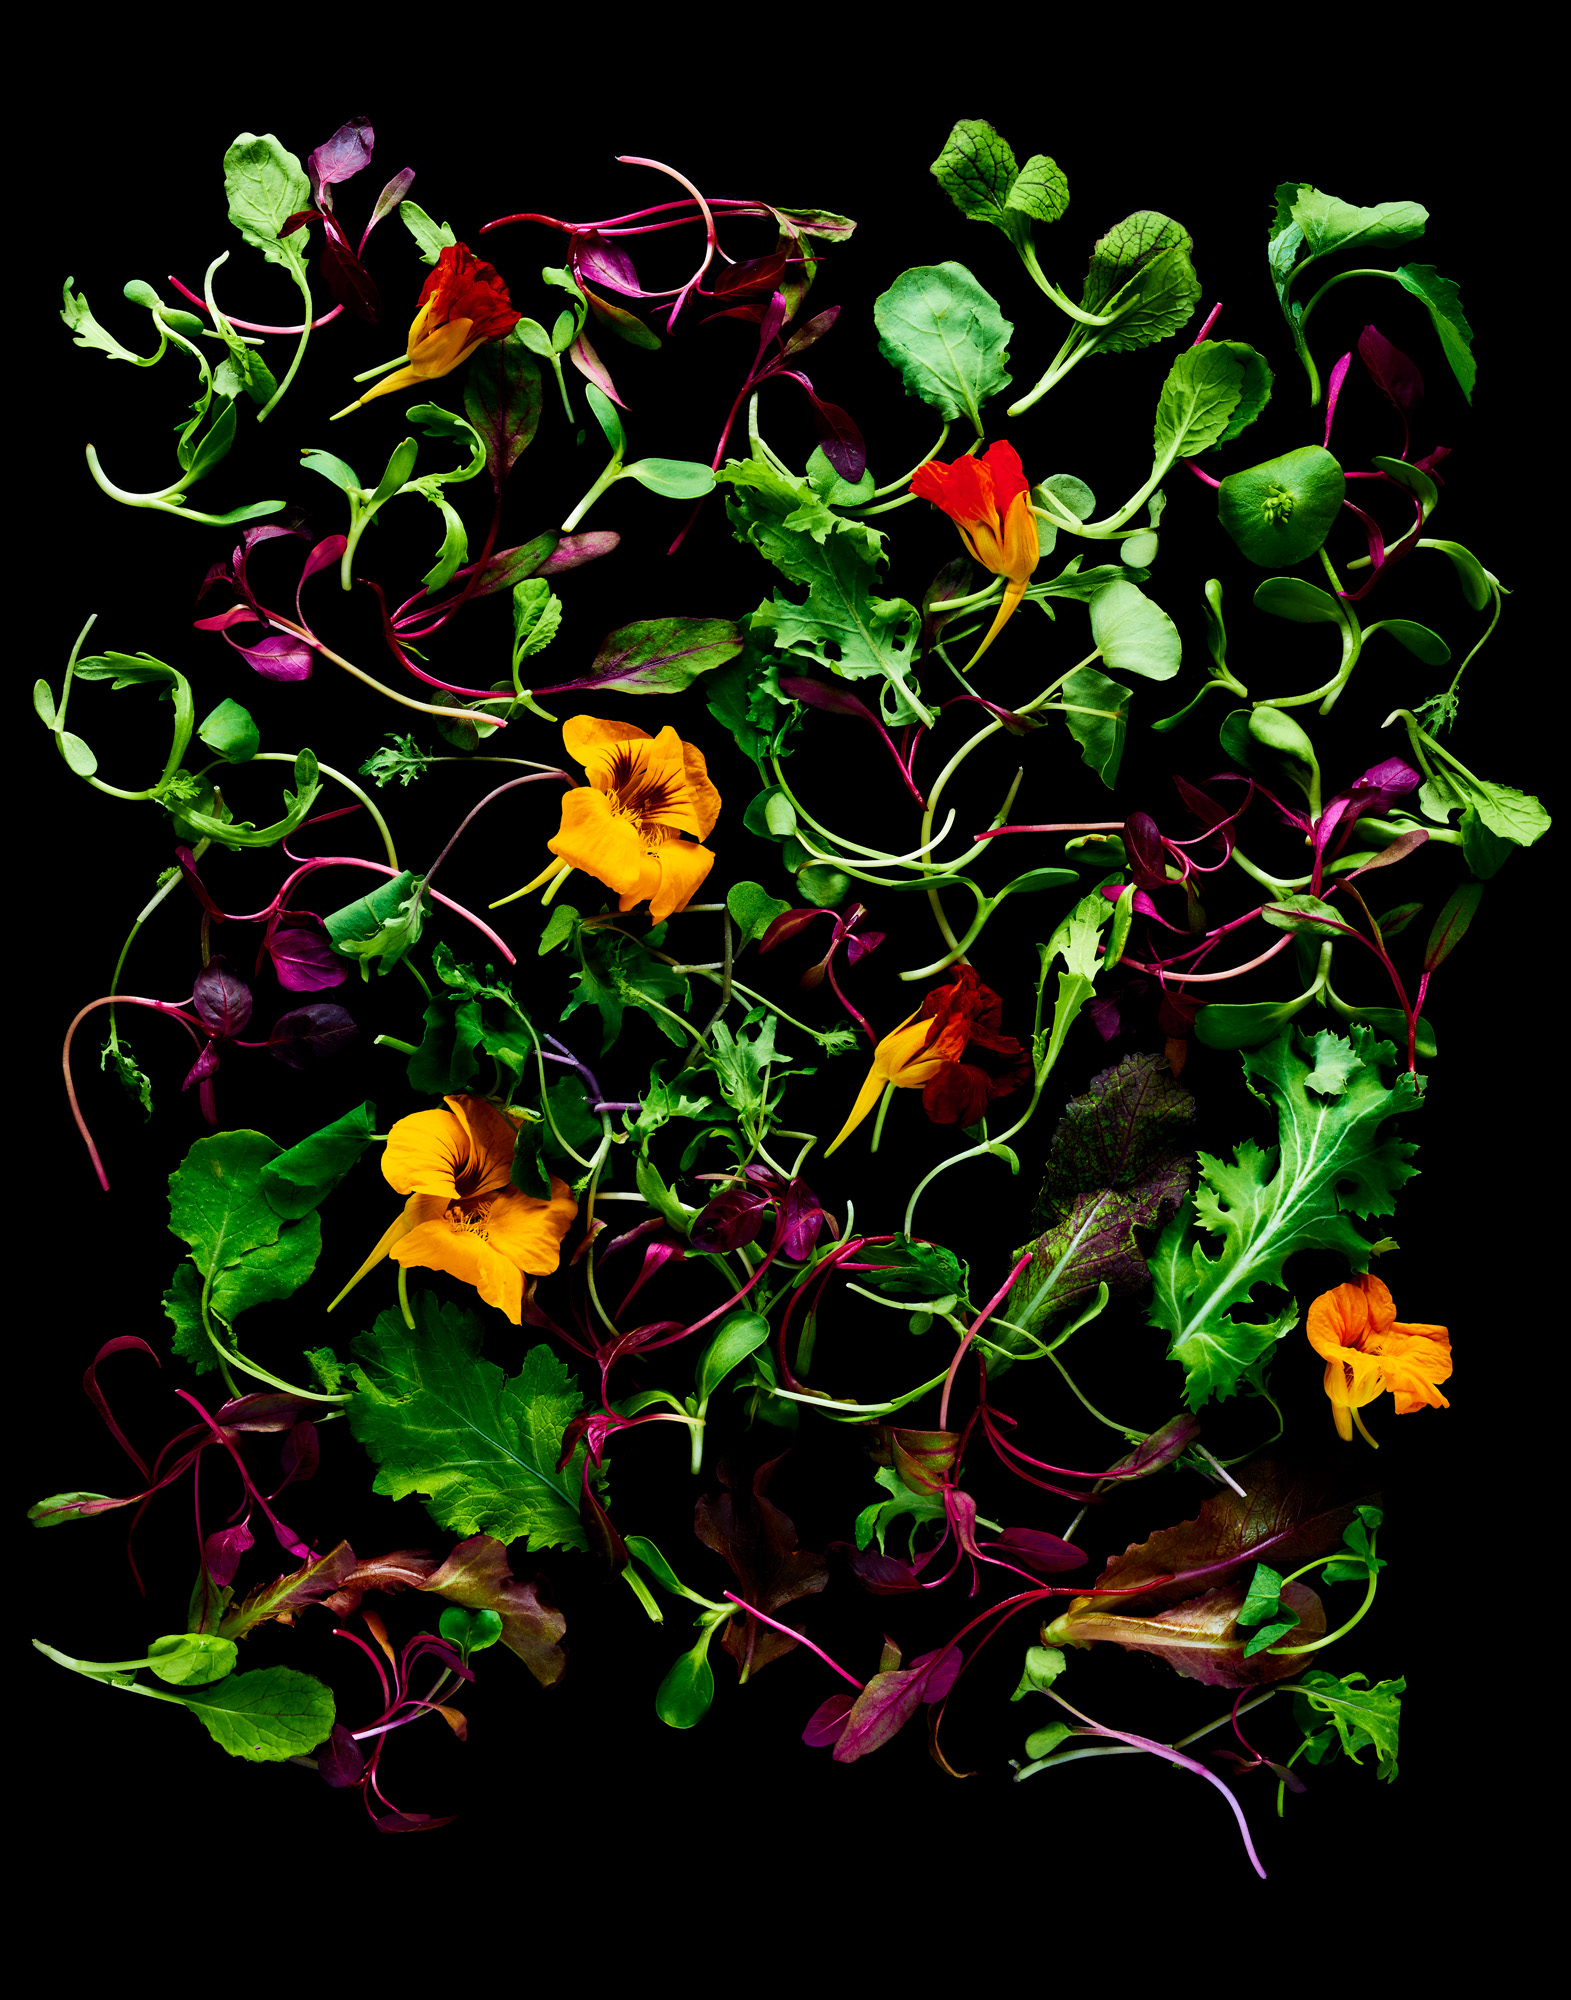 170503-Group-Microgreens-157-V1